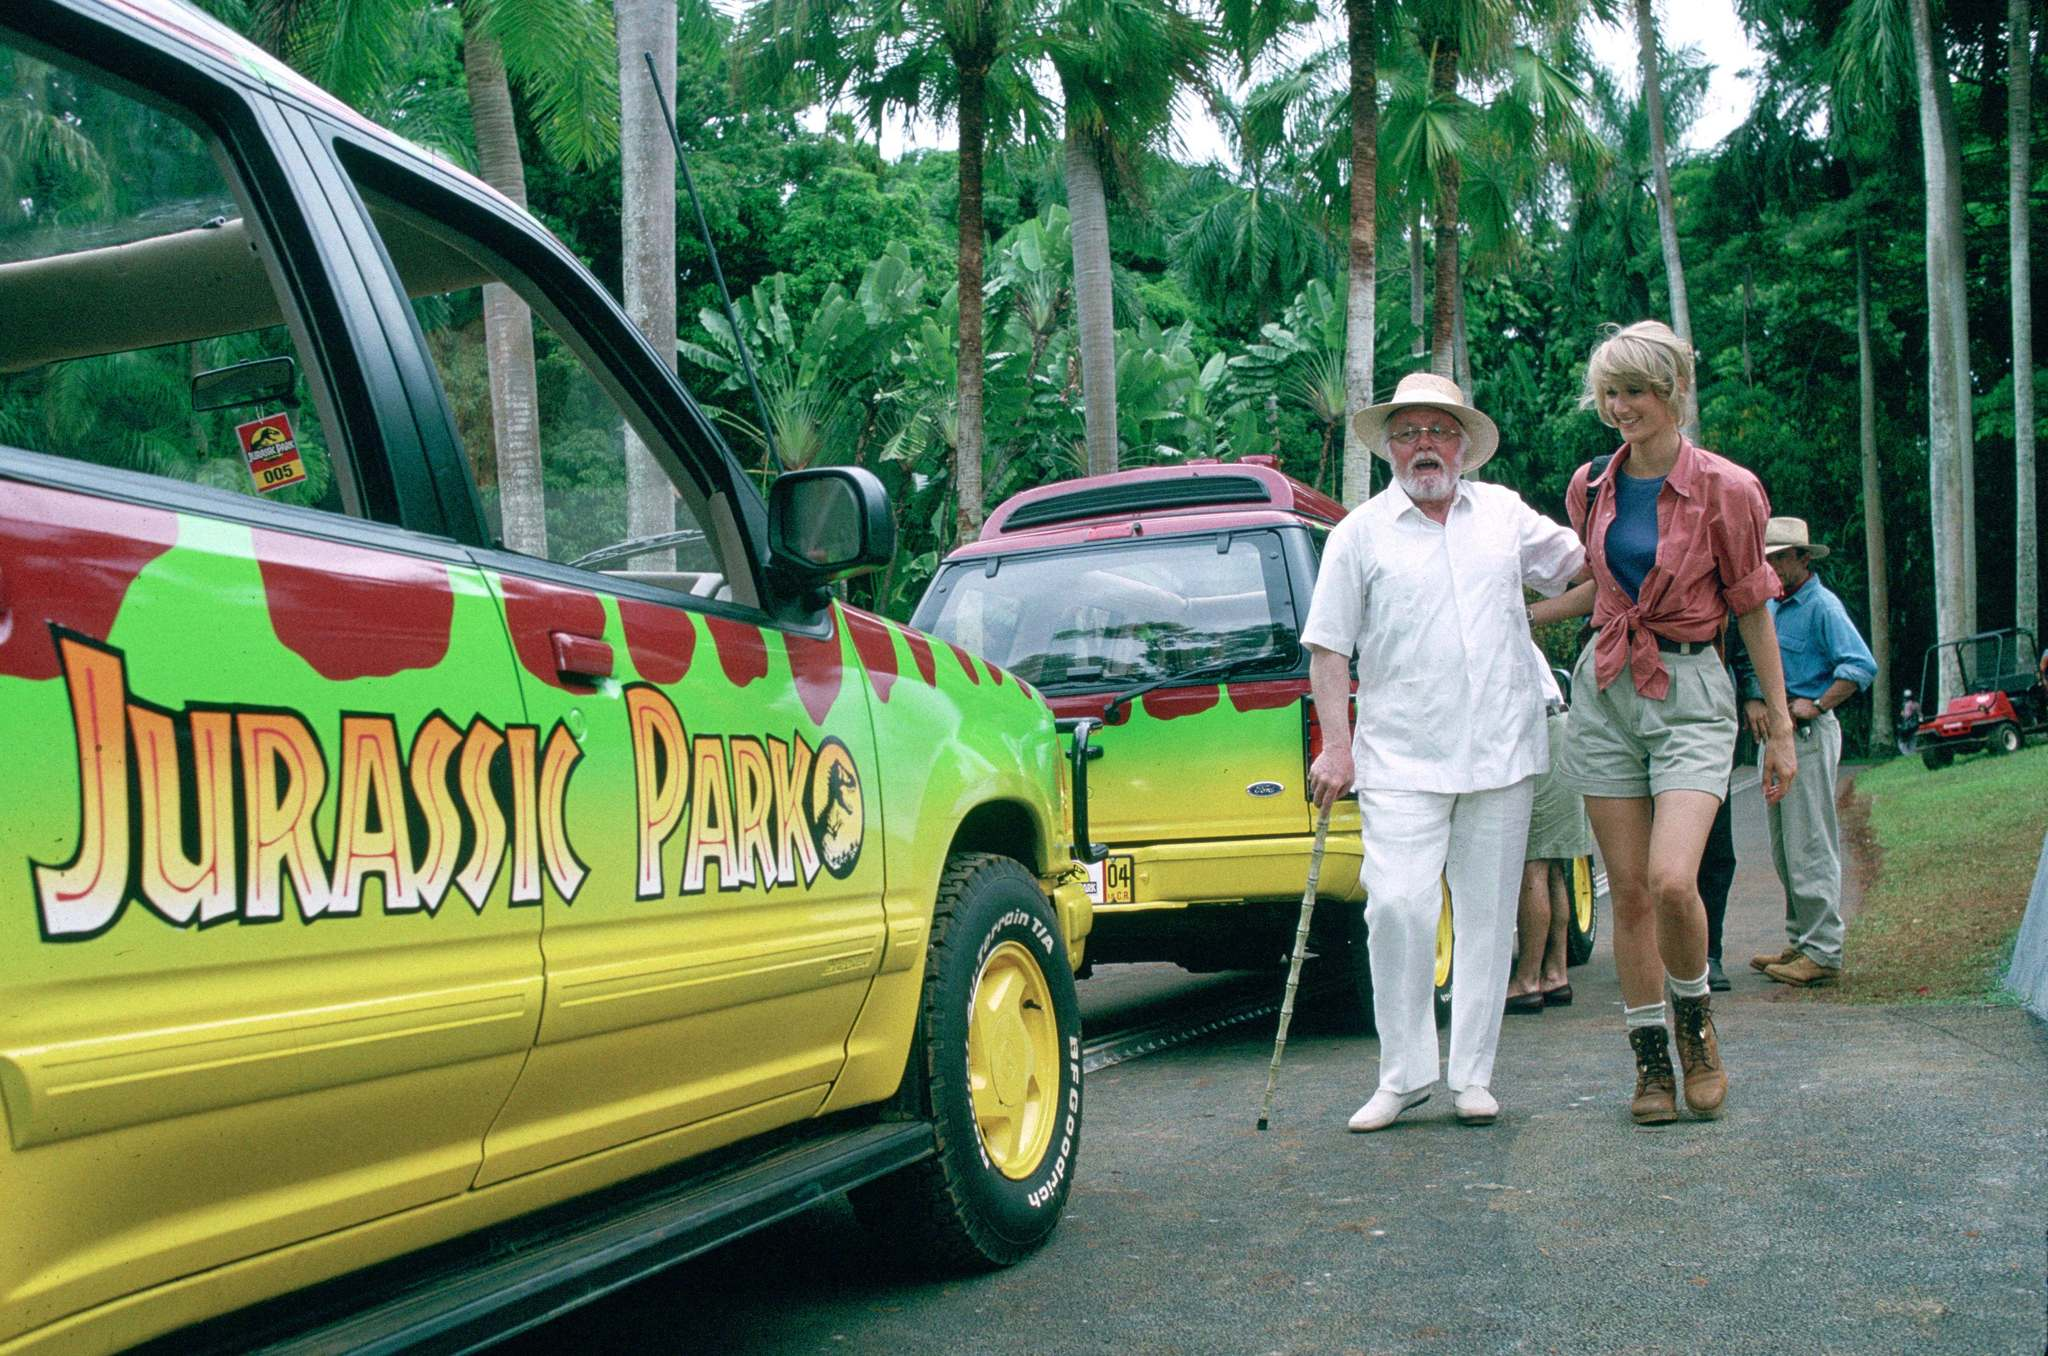 Jurassic Park (1993) – That Was A Bit Mental